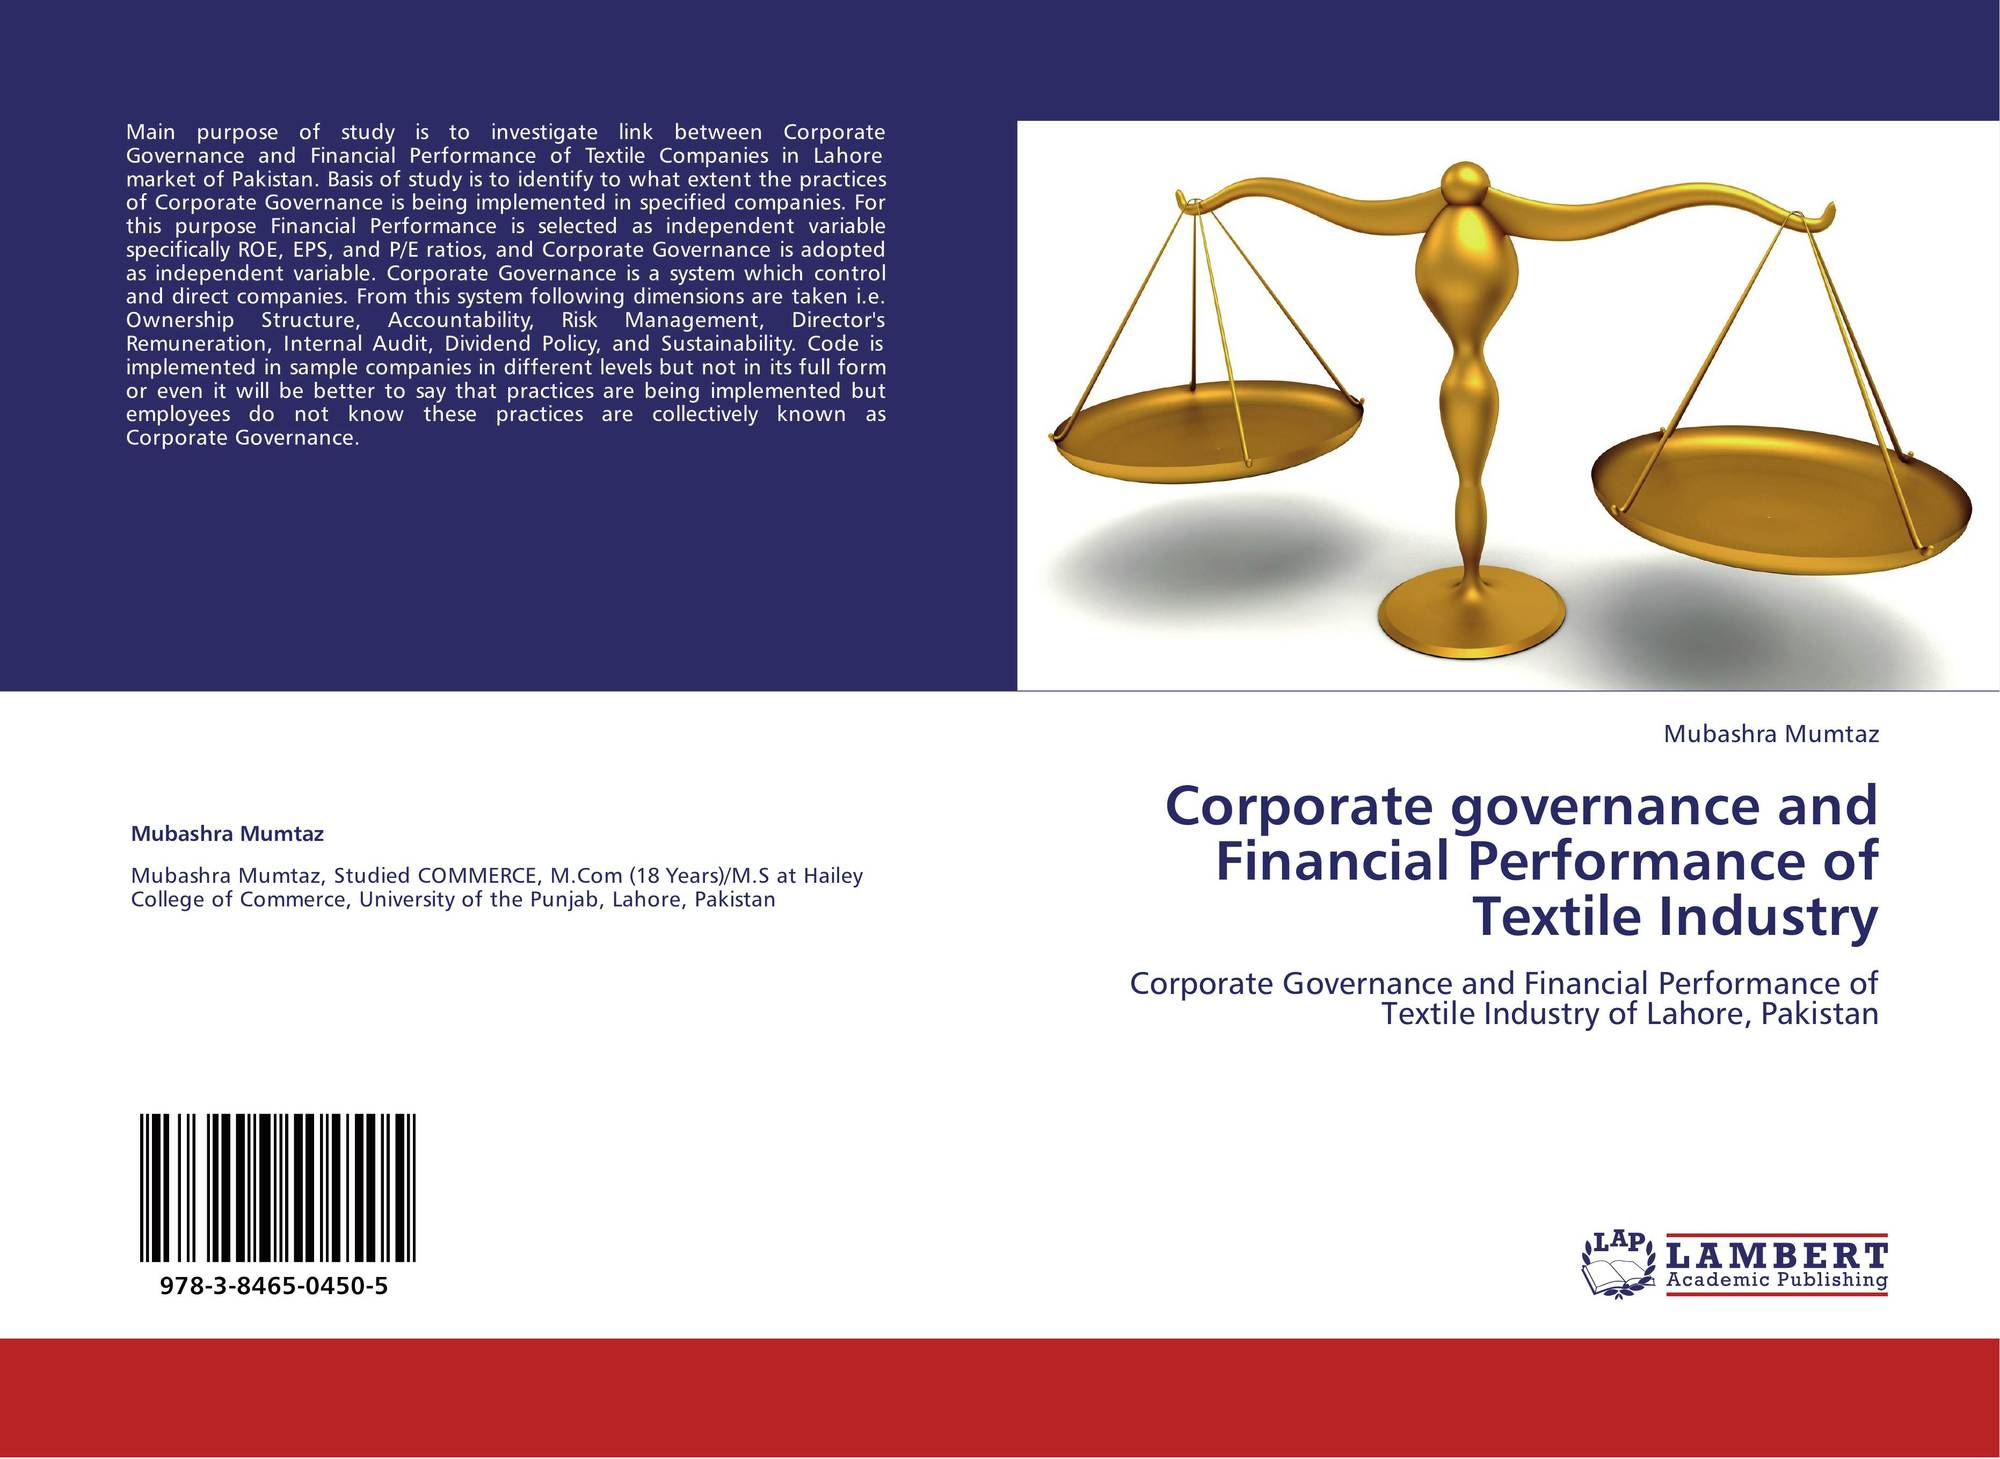 Corporate governance and Financial Performance of Textile